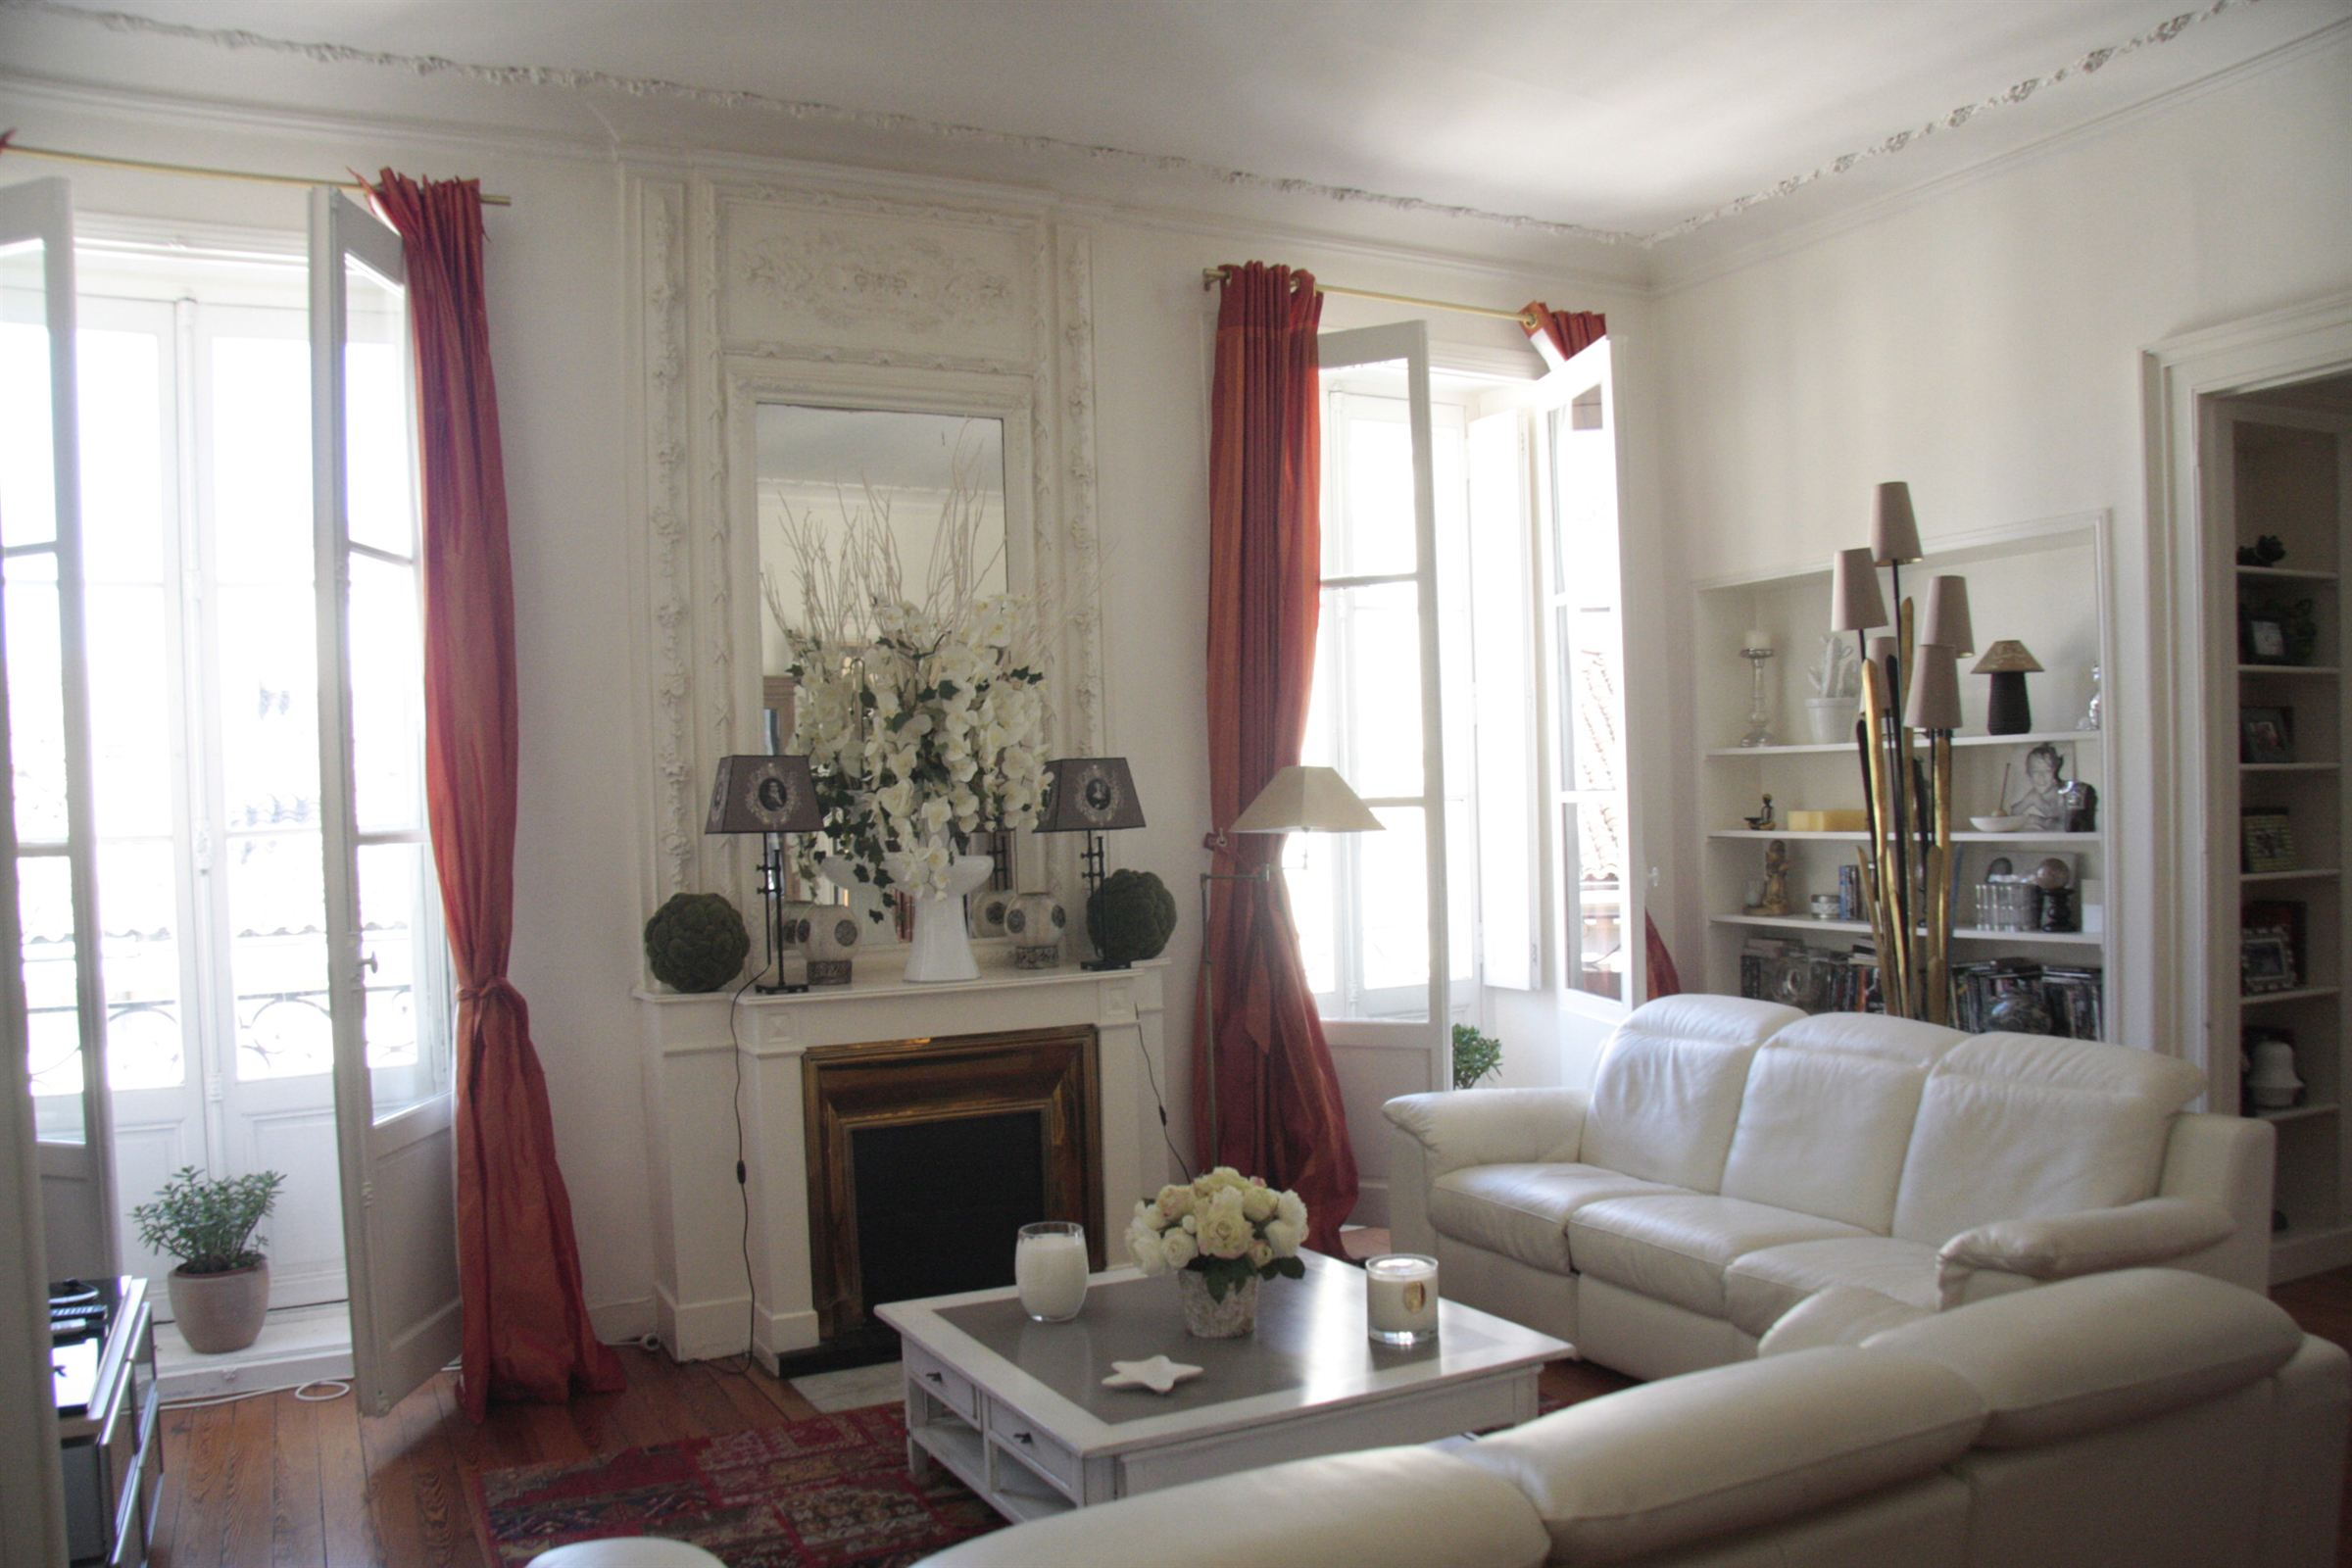 Property For Sale at Lovely apartment in 18th cent. stone building in the heart of Bordeaux.